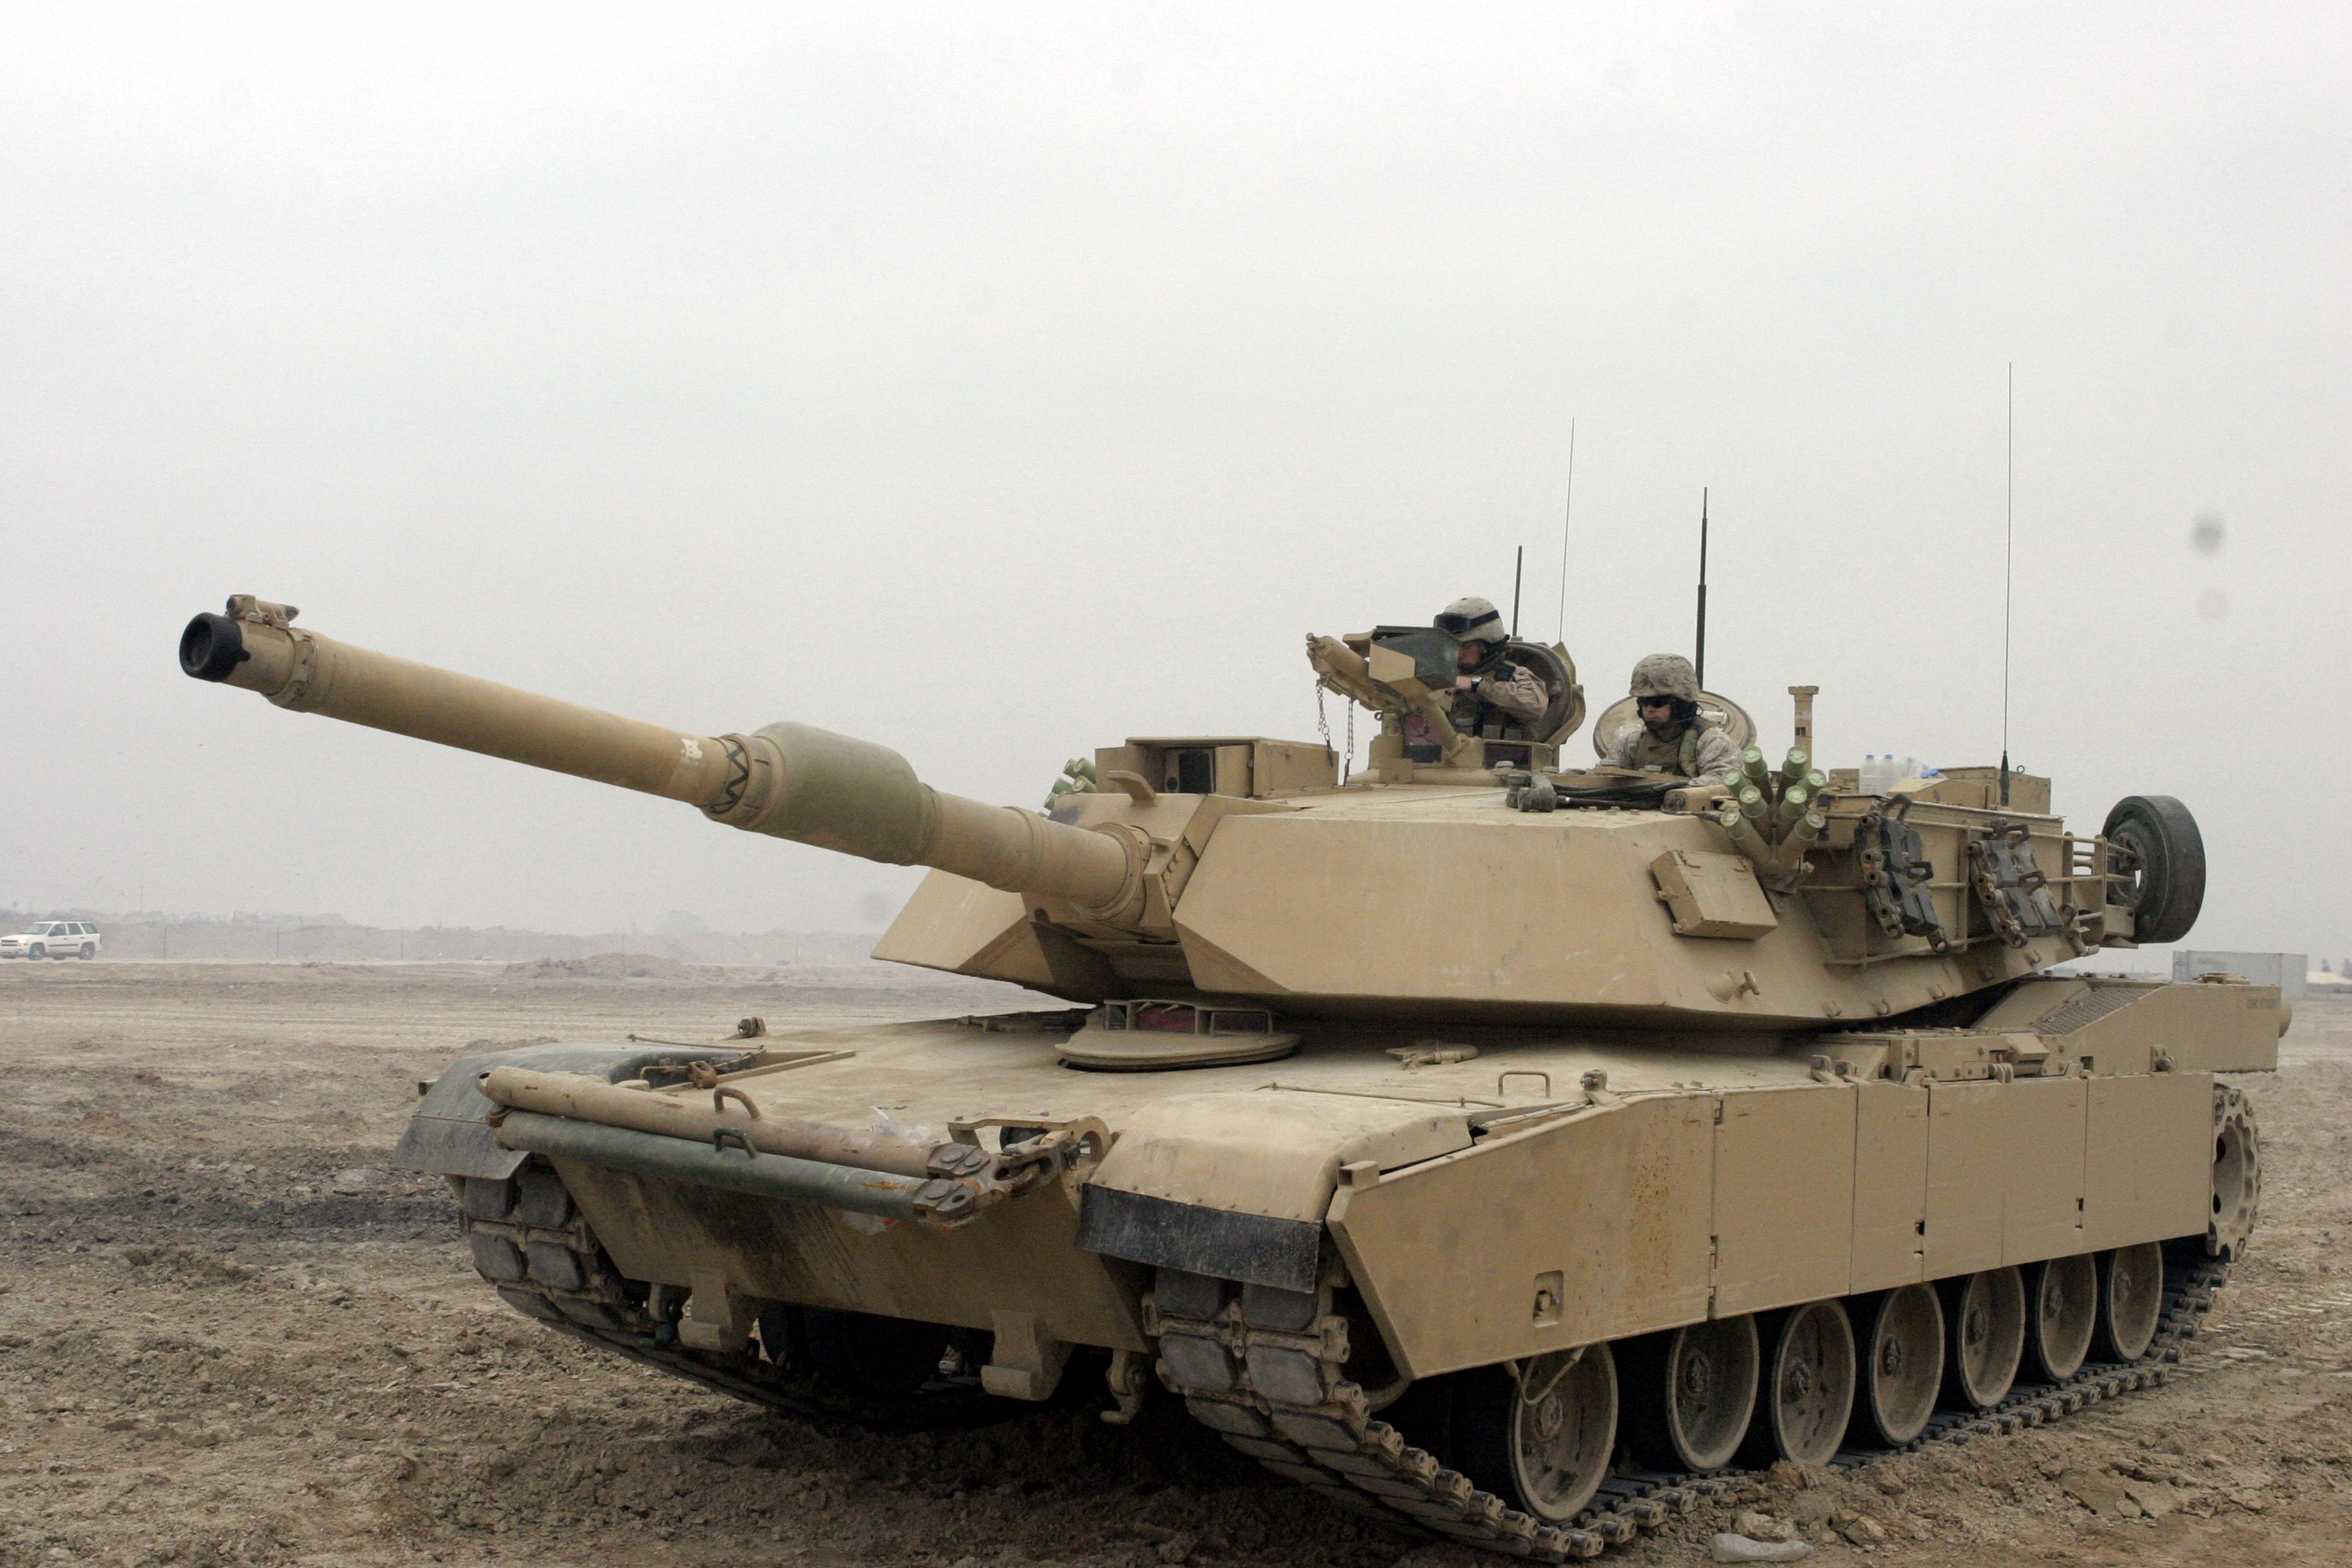 This is a US M1A1 main battle tank. Note the very large tank cannon and prominent turret.